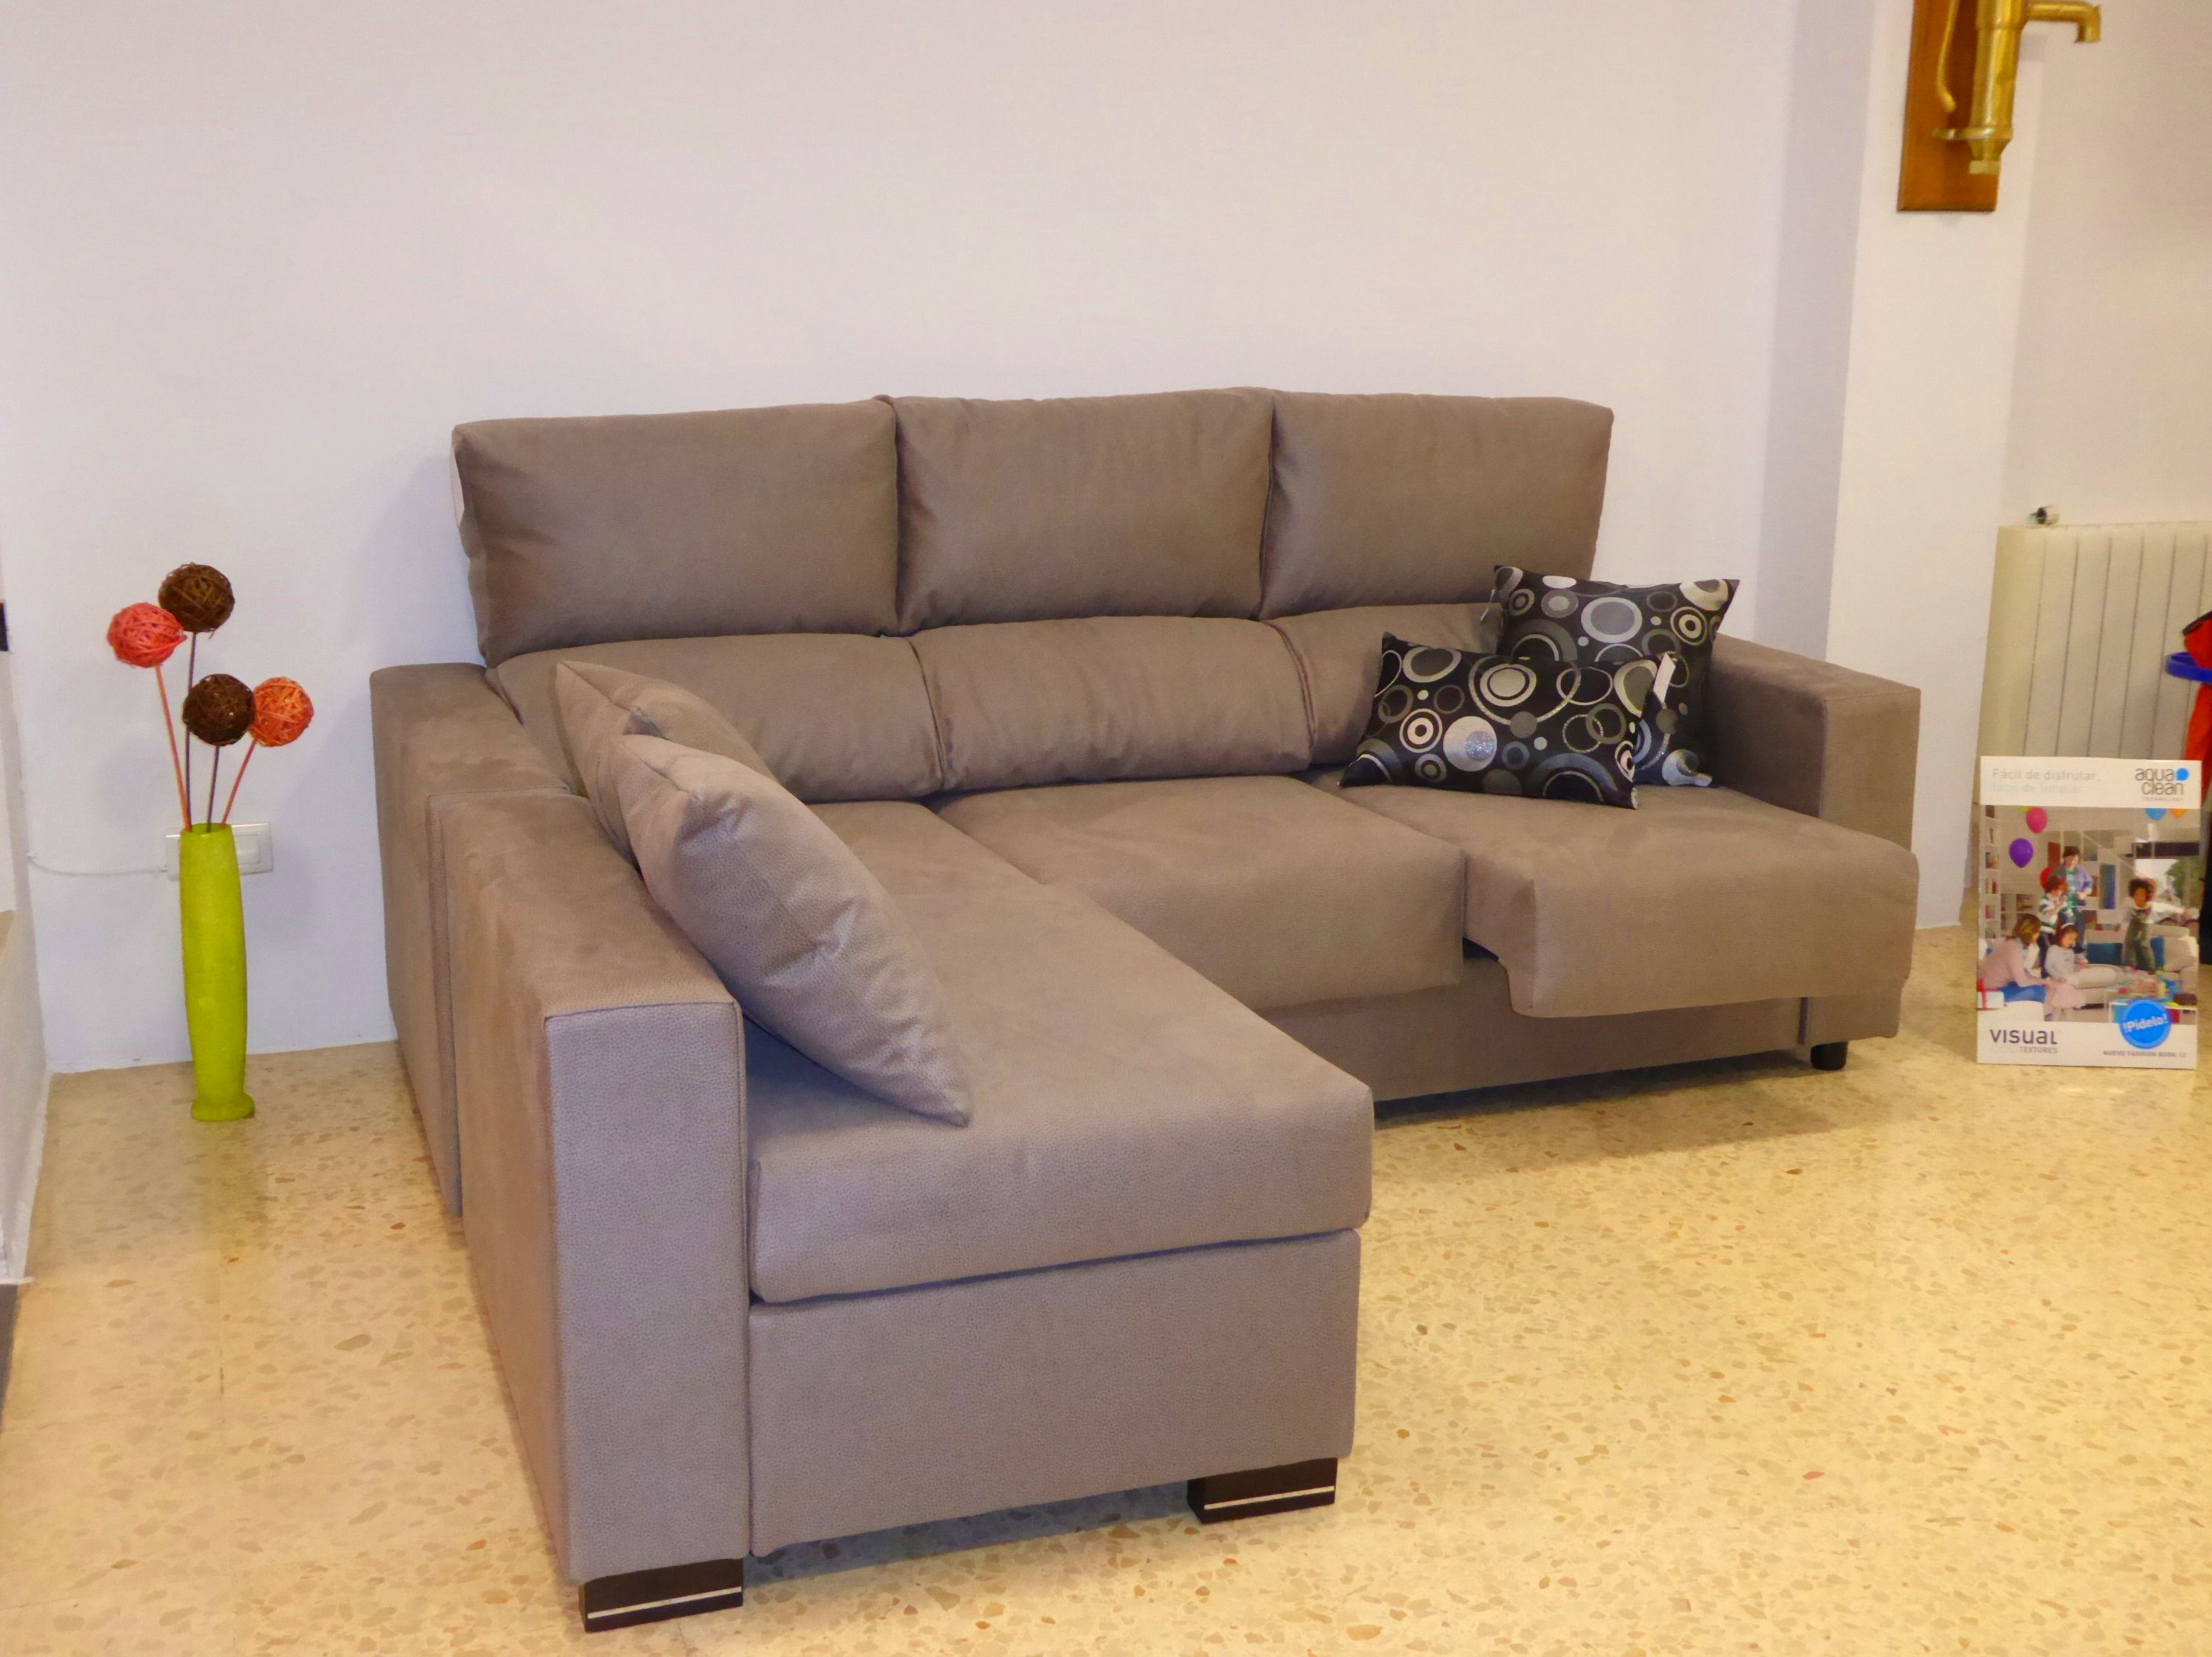 OFERTA SOFA CHAISELONGUE SOLO POR 840 EUROS.